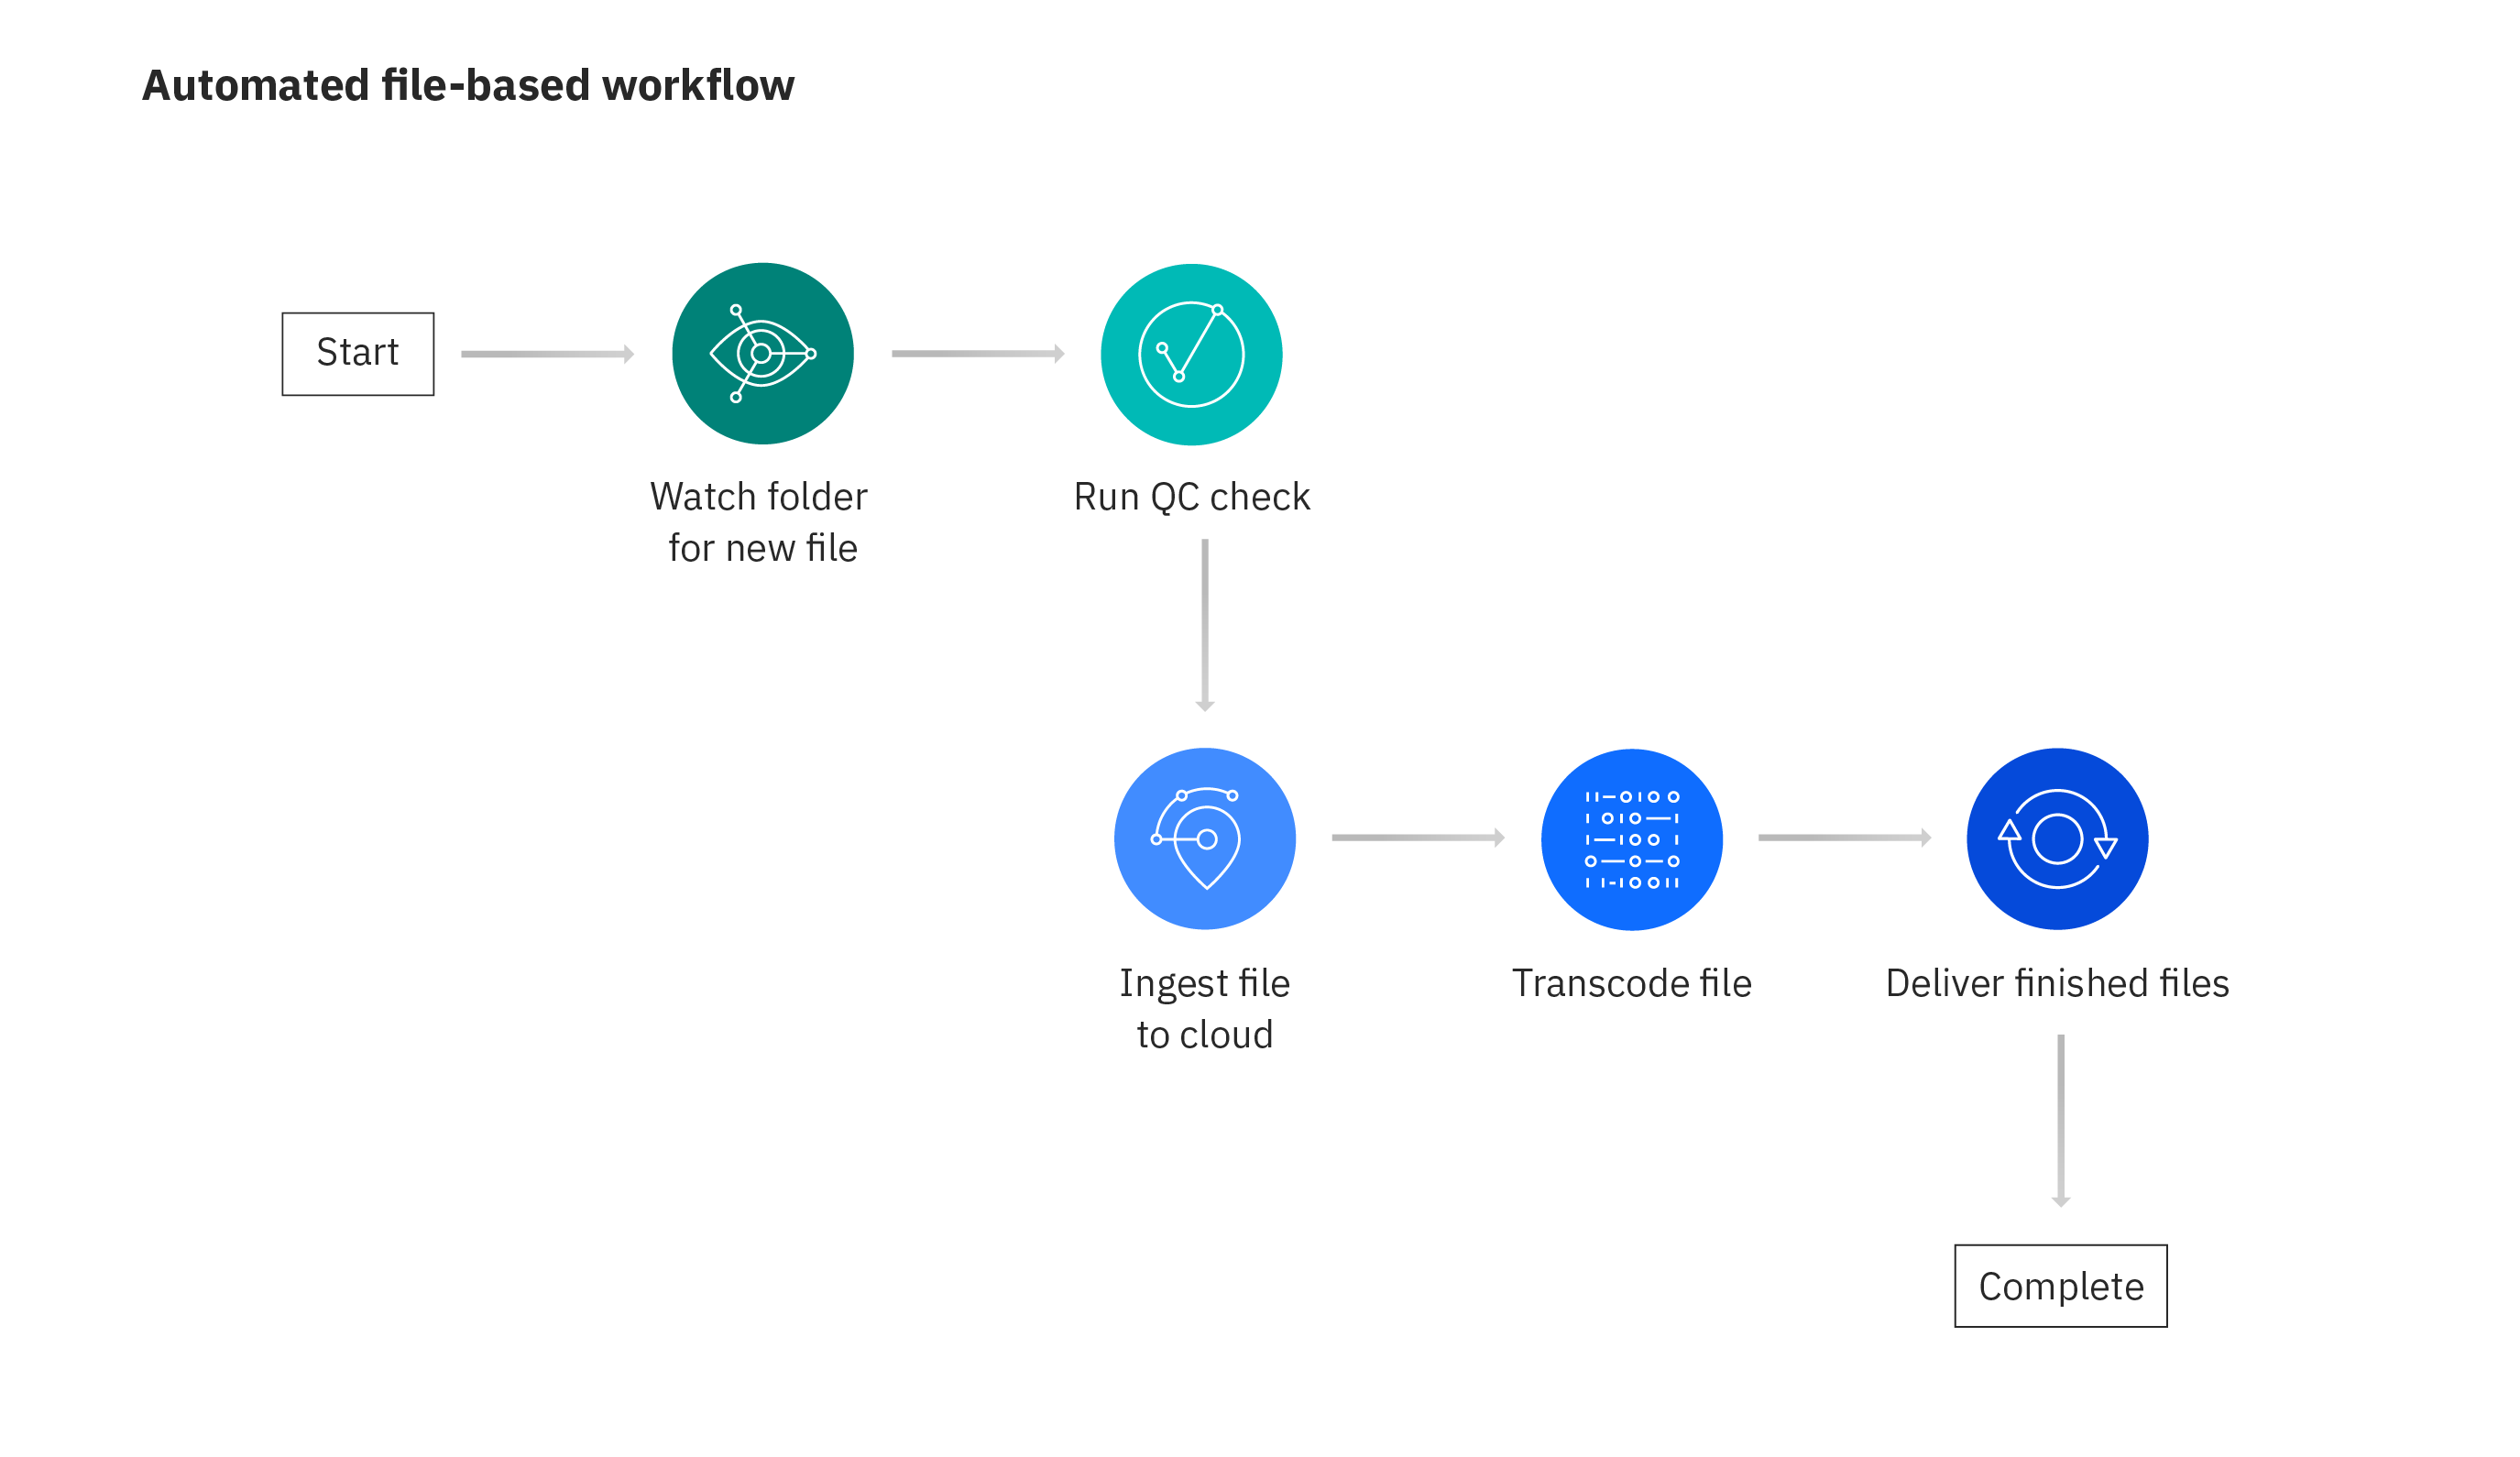 Diagram of how Aspera helps automate file-based workflows